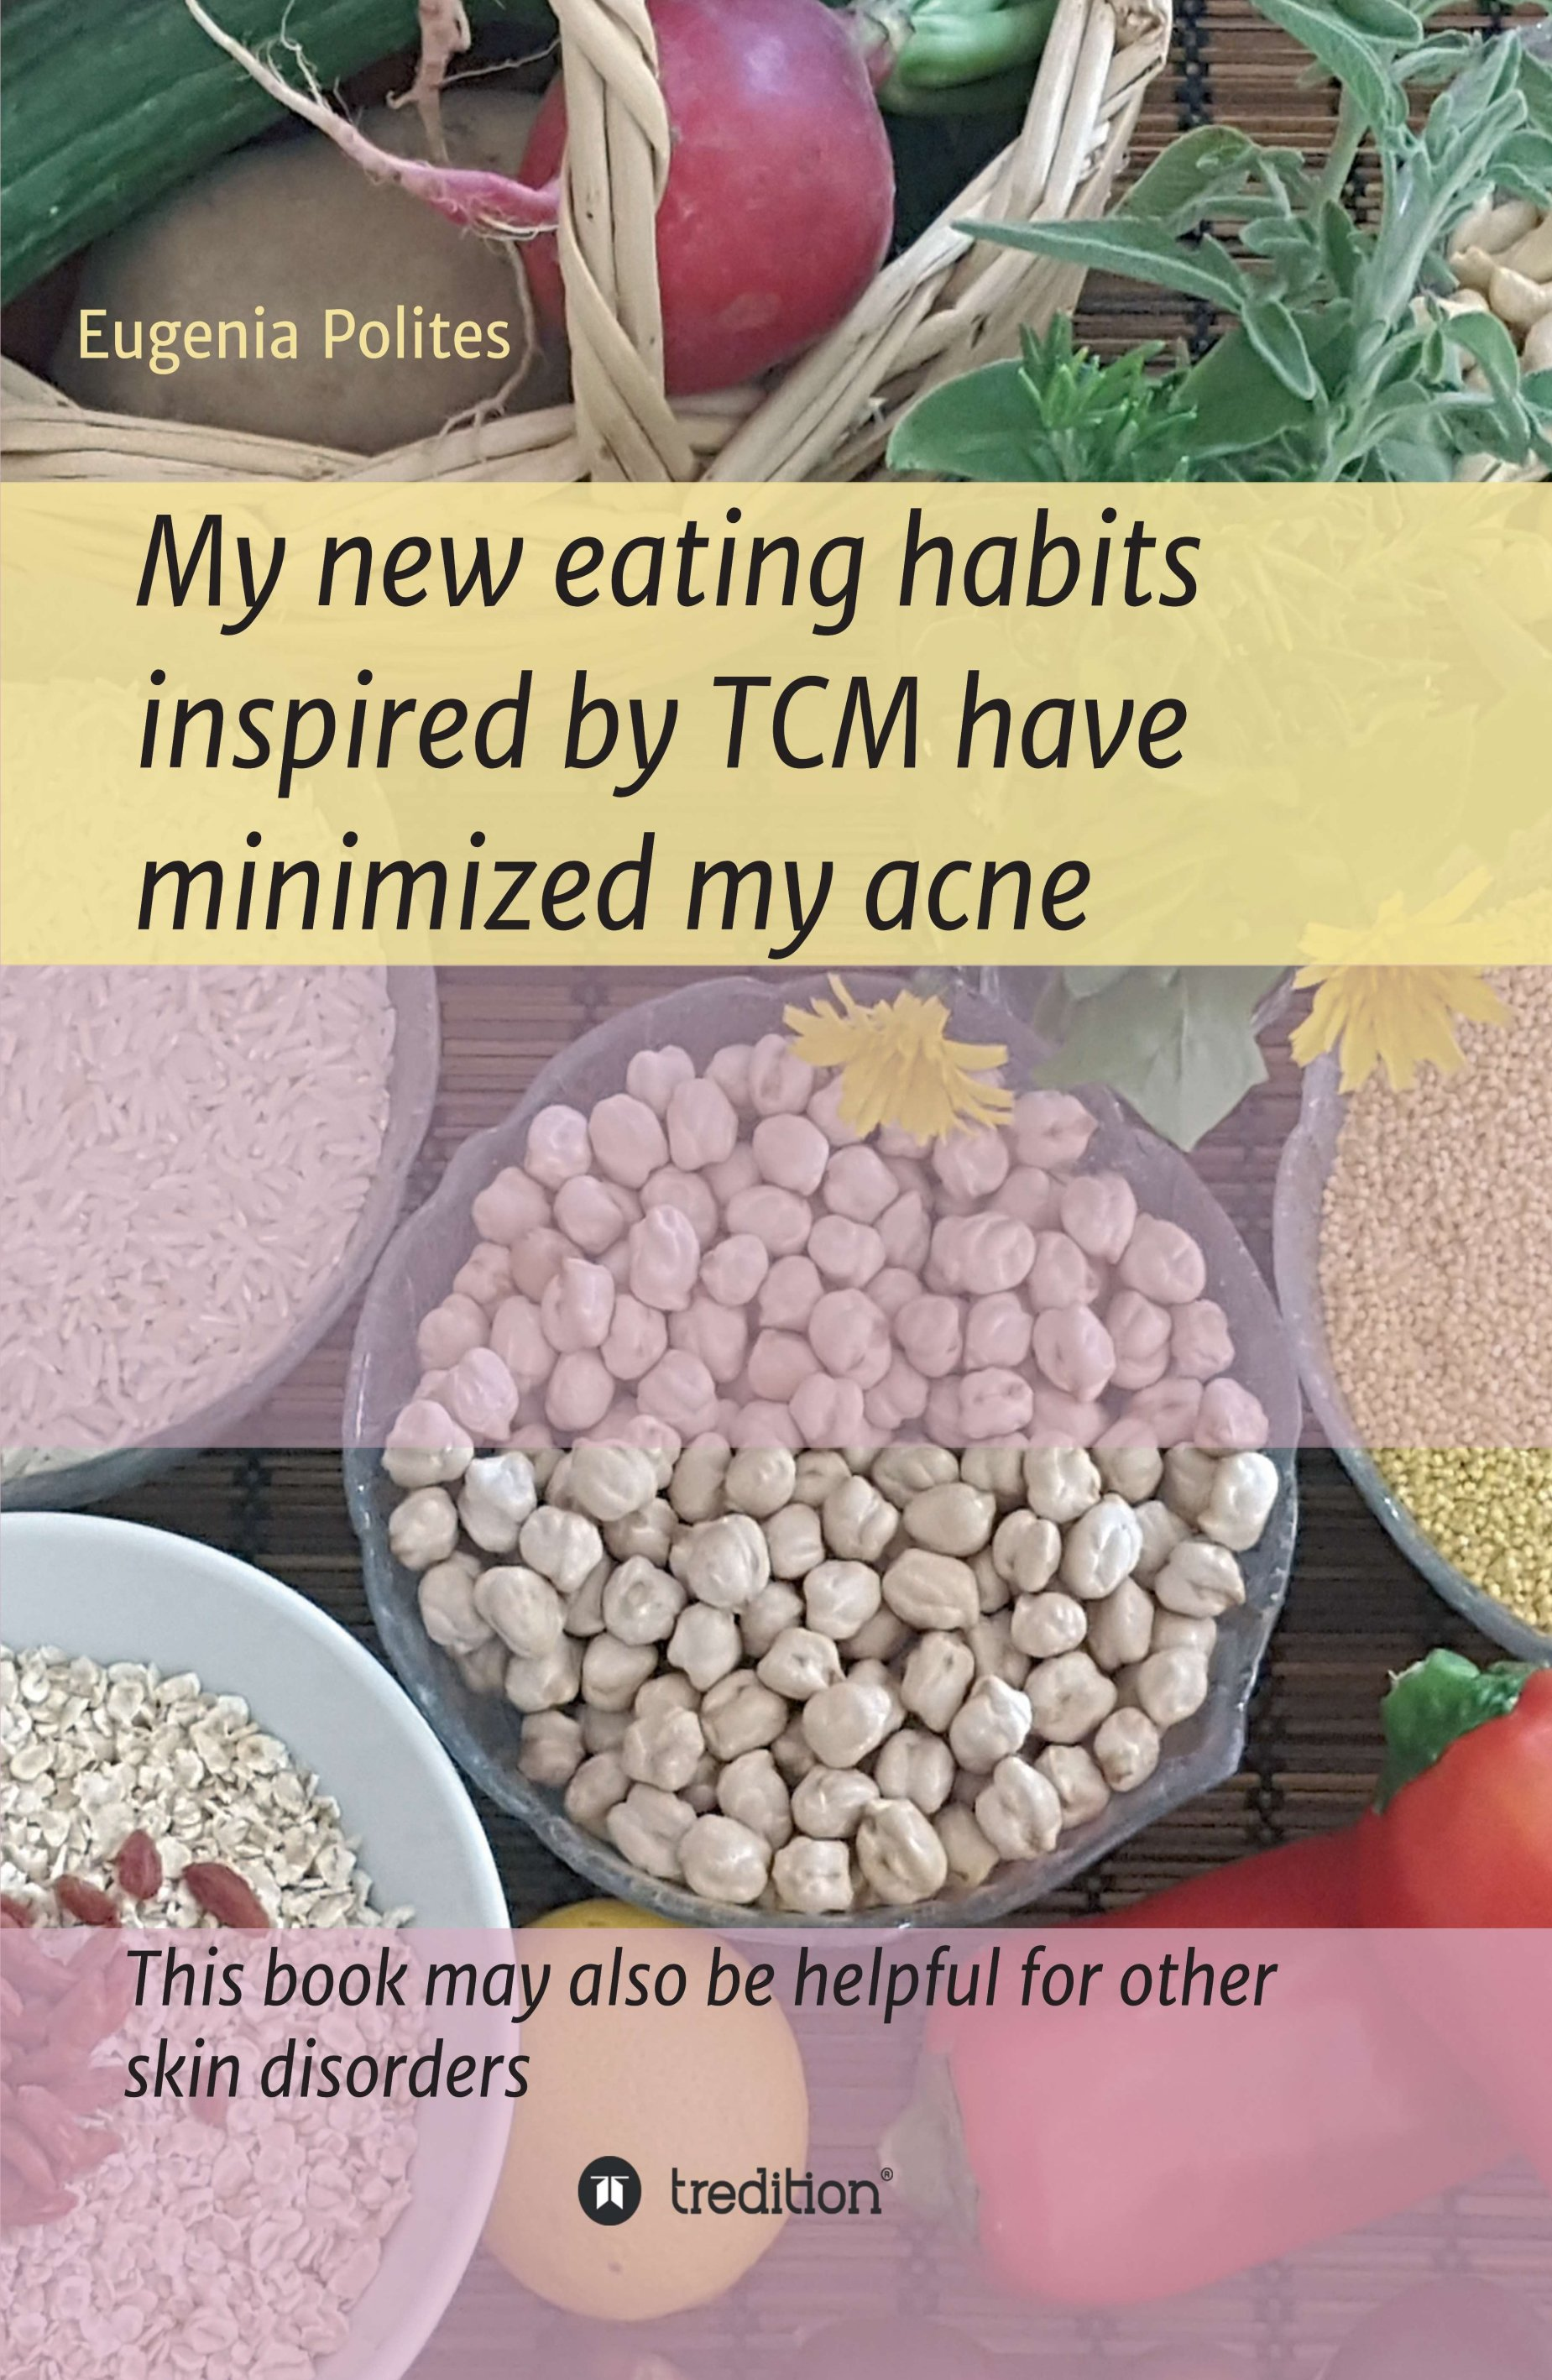 My new eating habits inspired by TCM have minimized my acne - Natural Acne Treatment